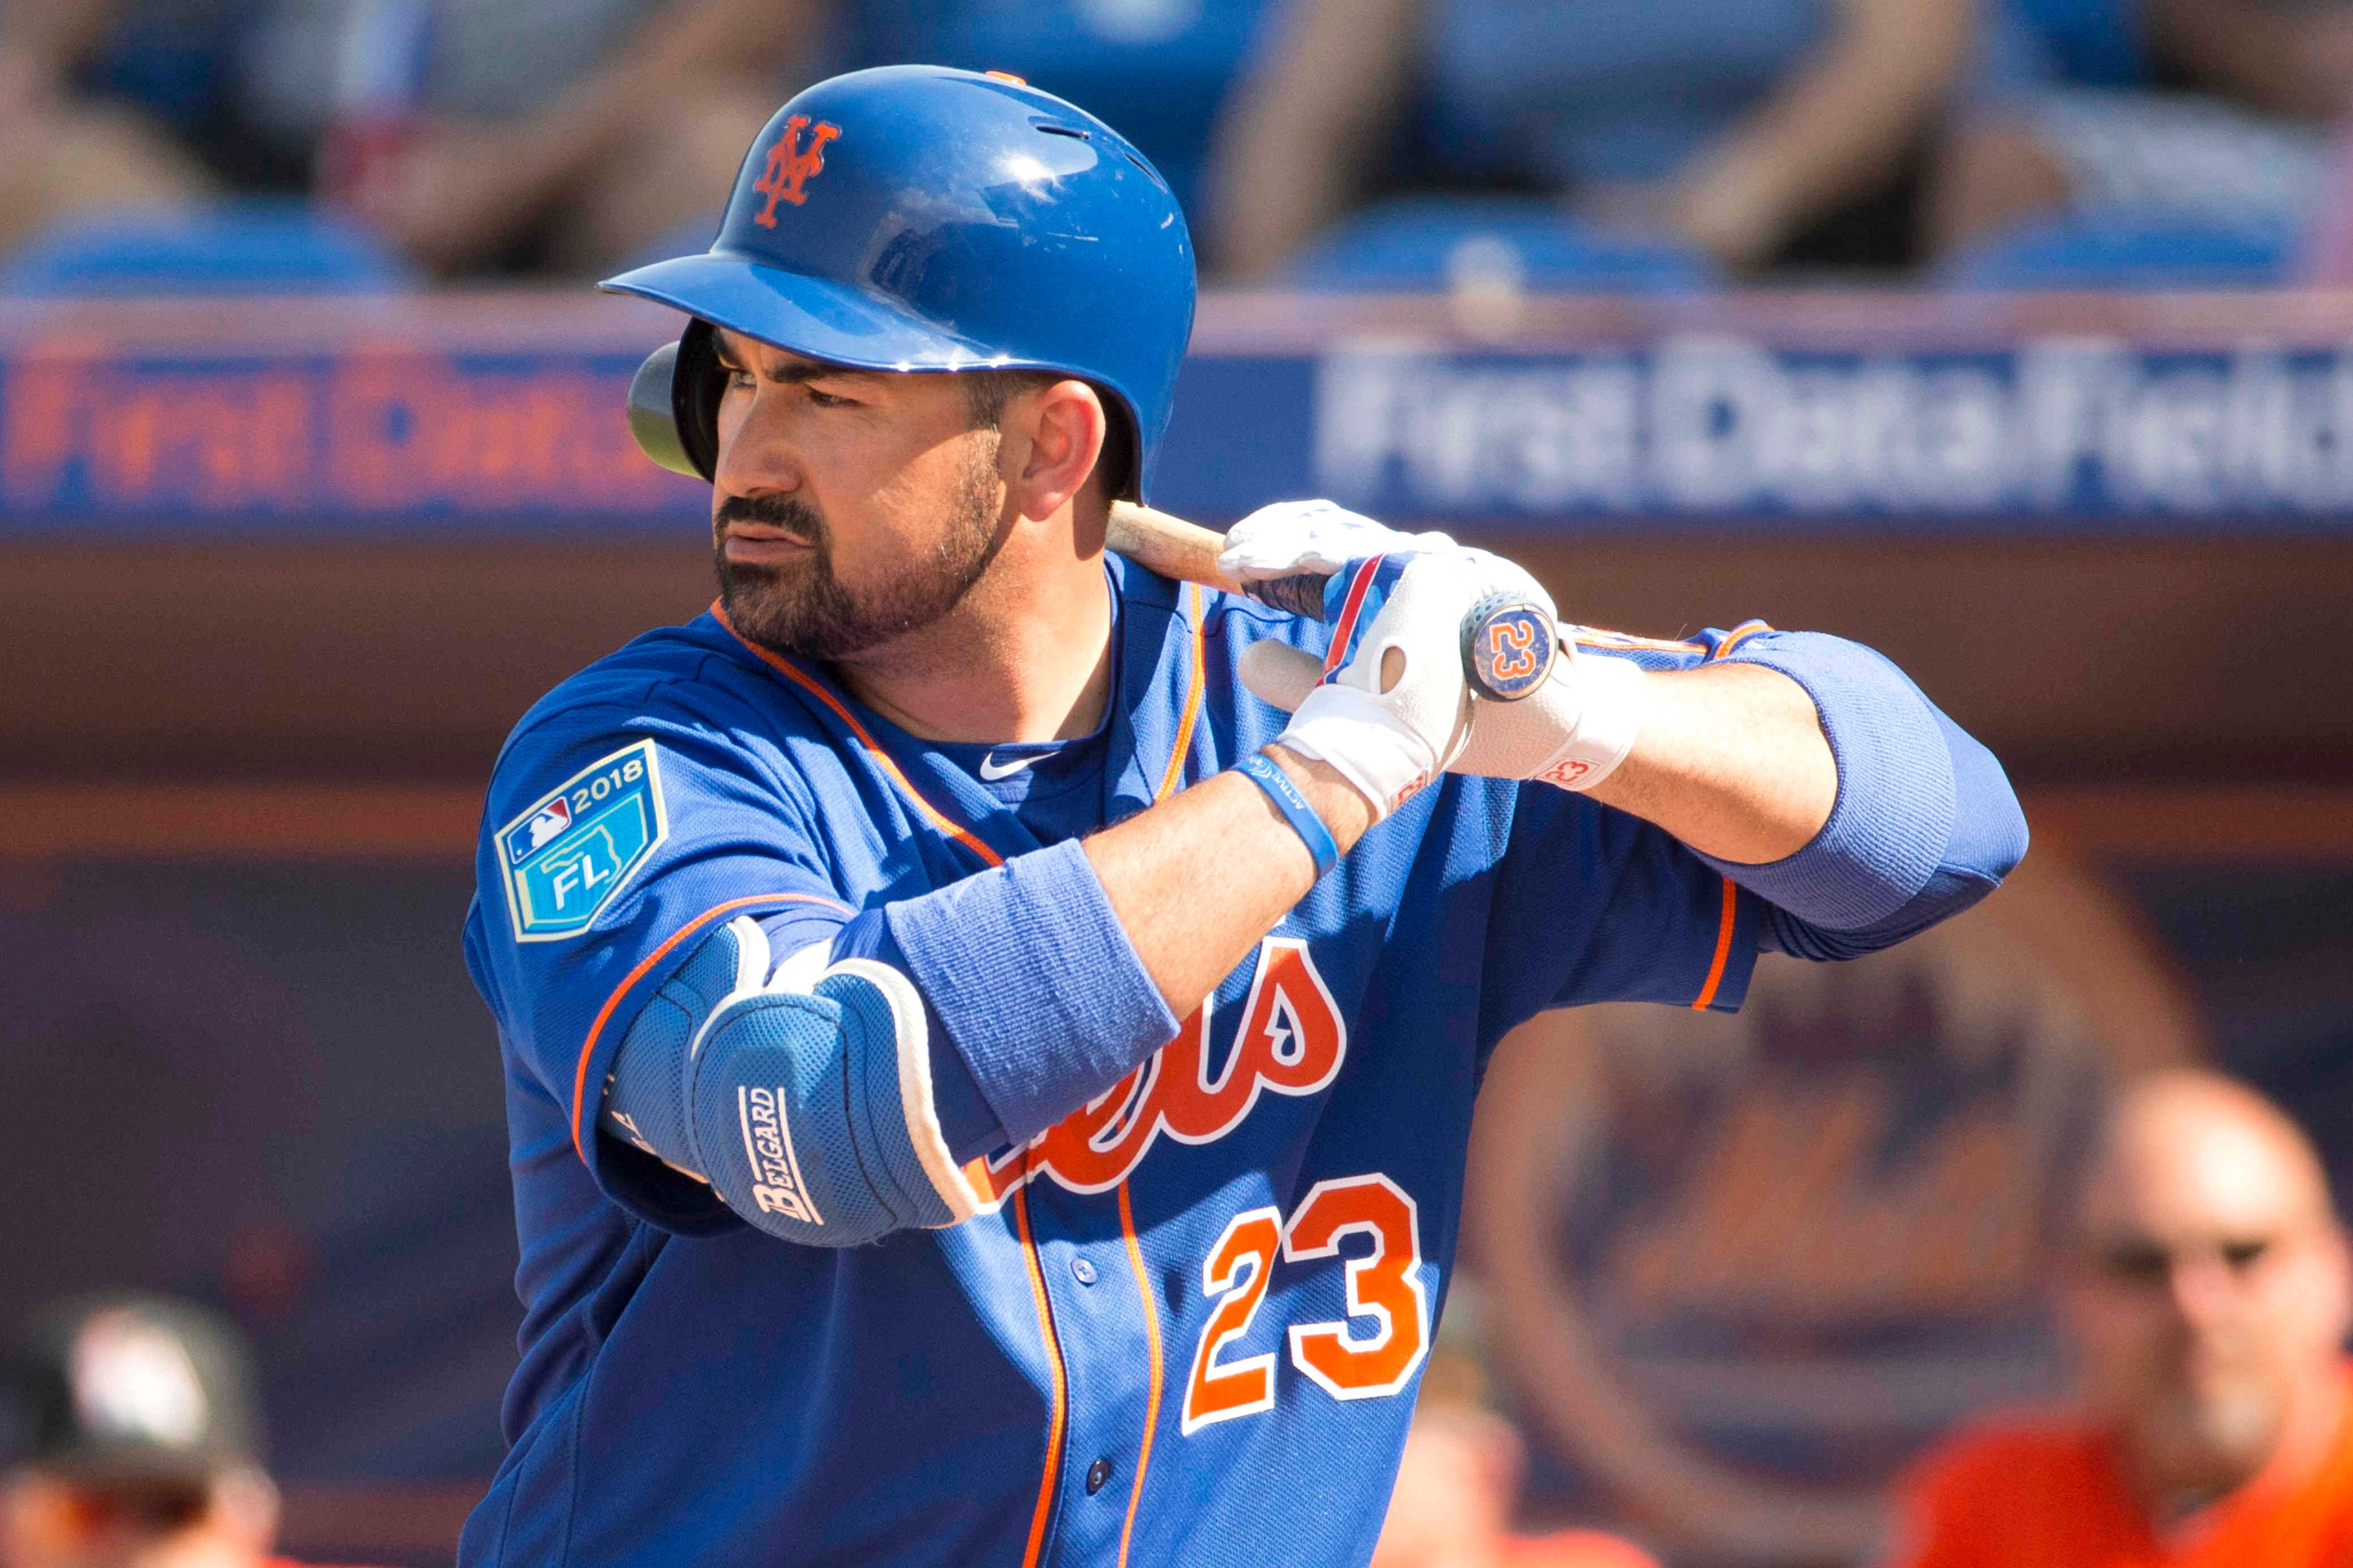 Adrian Gonzalez has one more shot to avoid becoming extinct